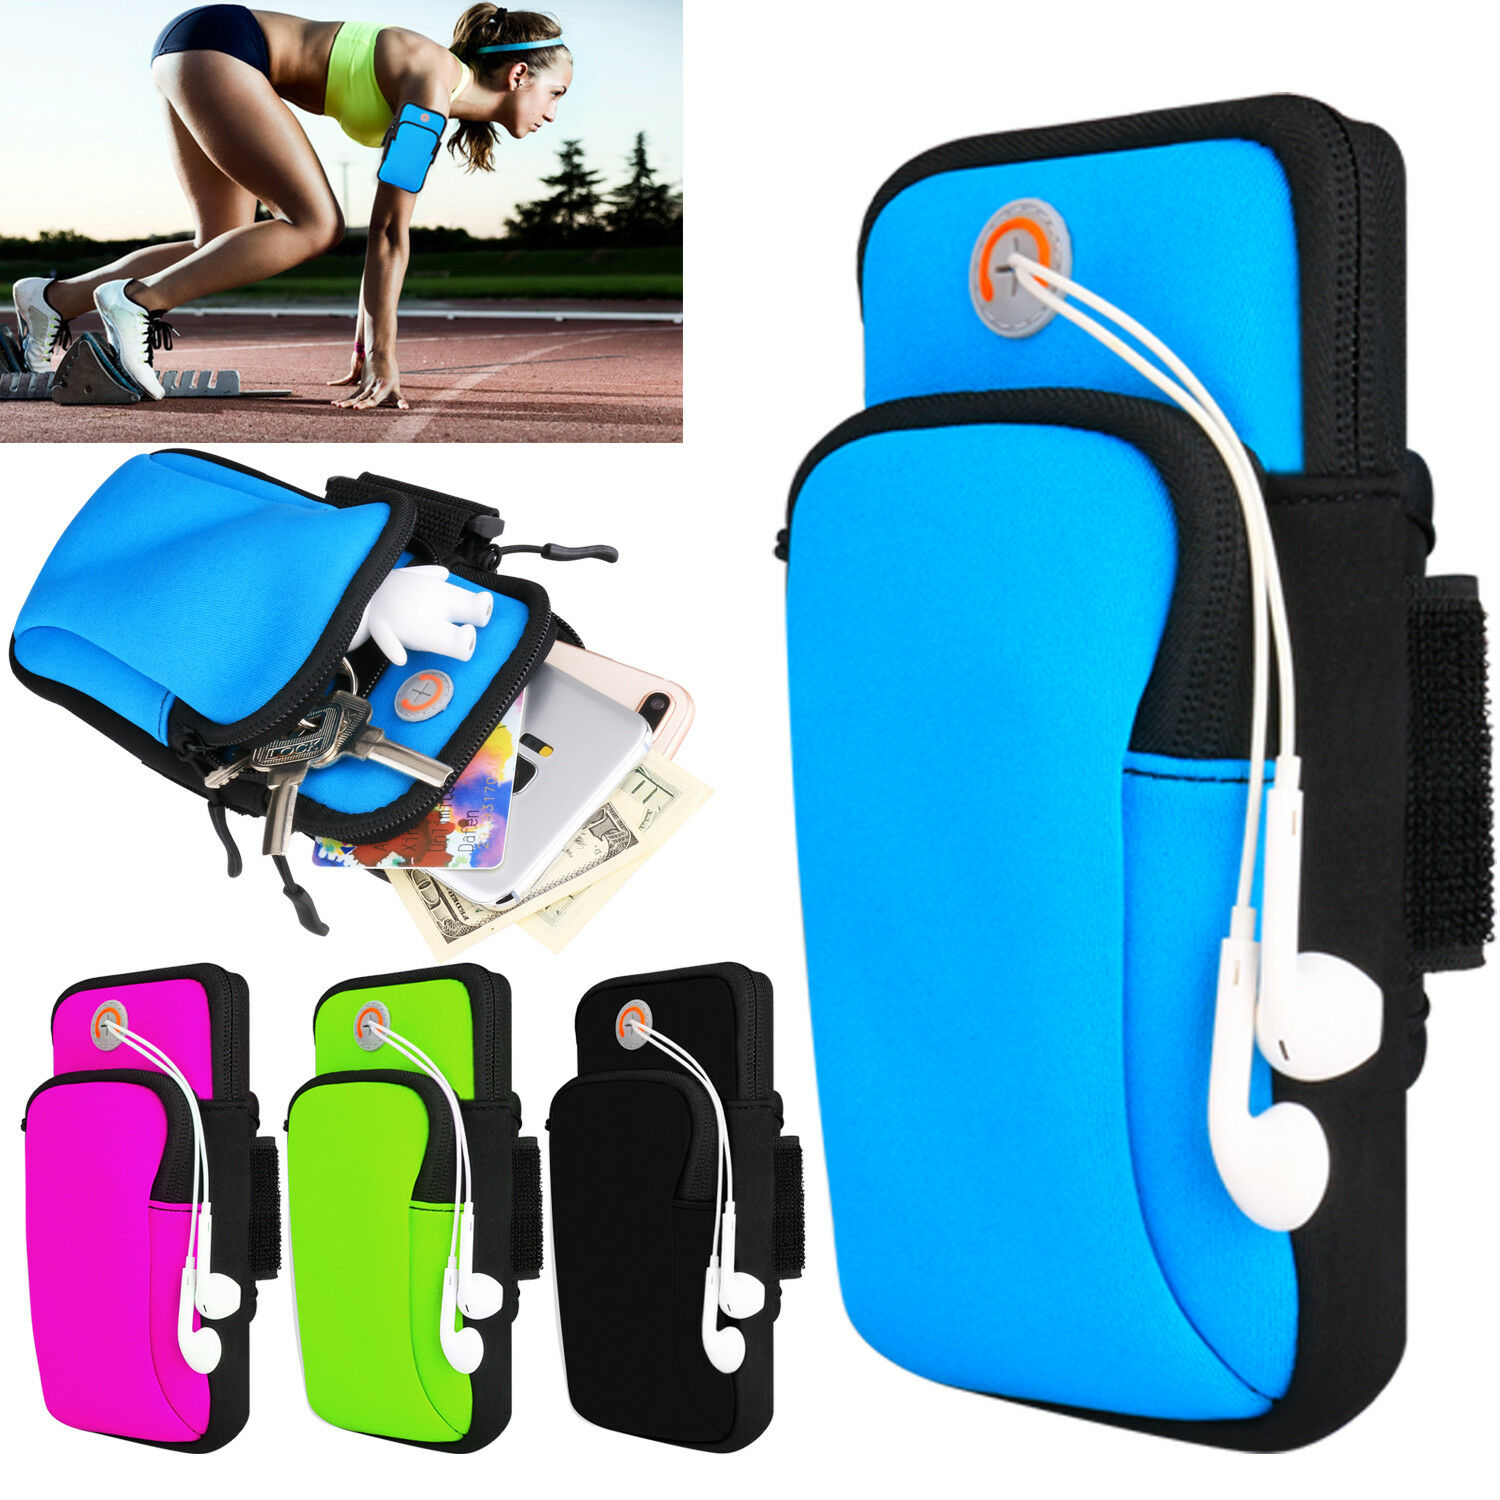 27713ce76659 Details about Sport Armband Running Jogging Gym Arm Band Pouch Holder Bag  Case For Cell Phone